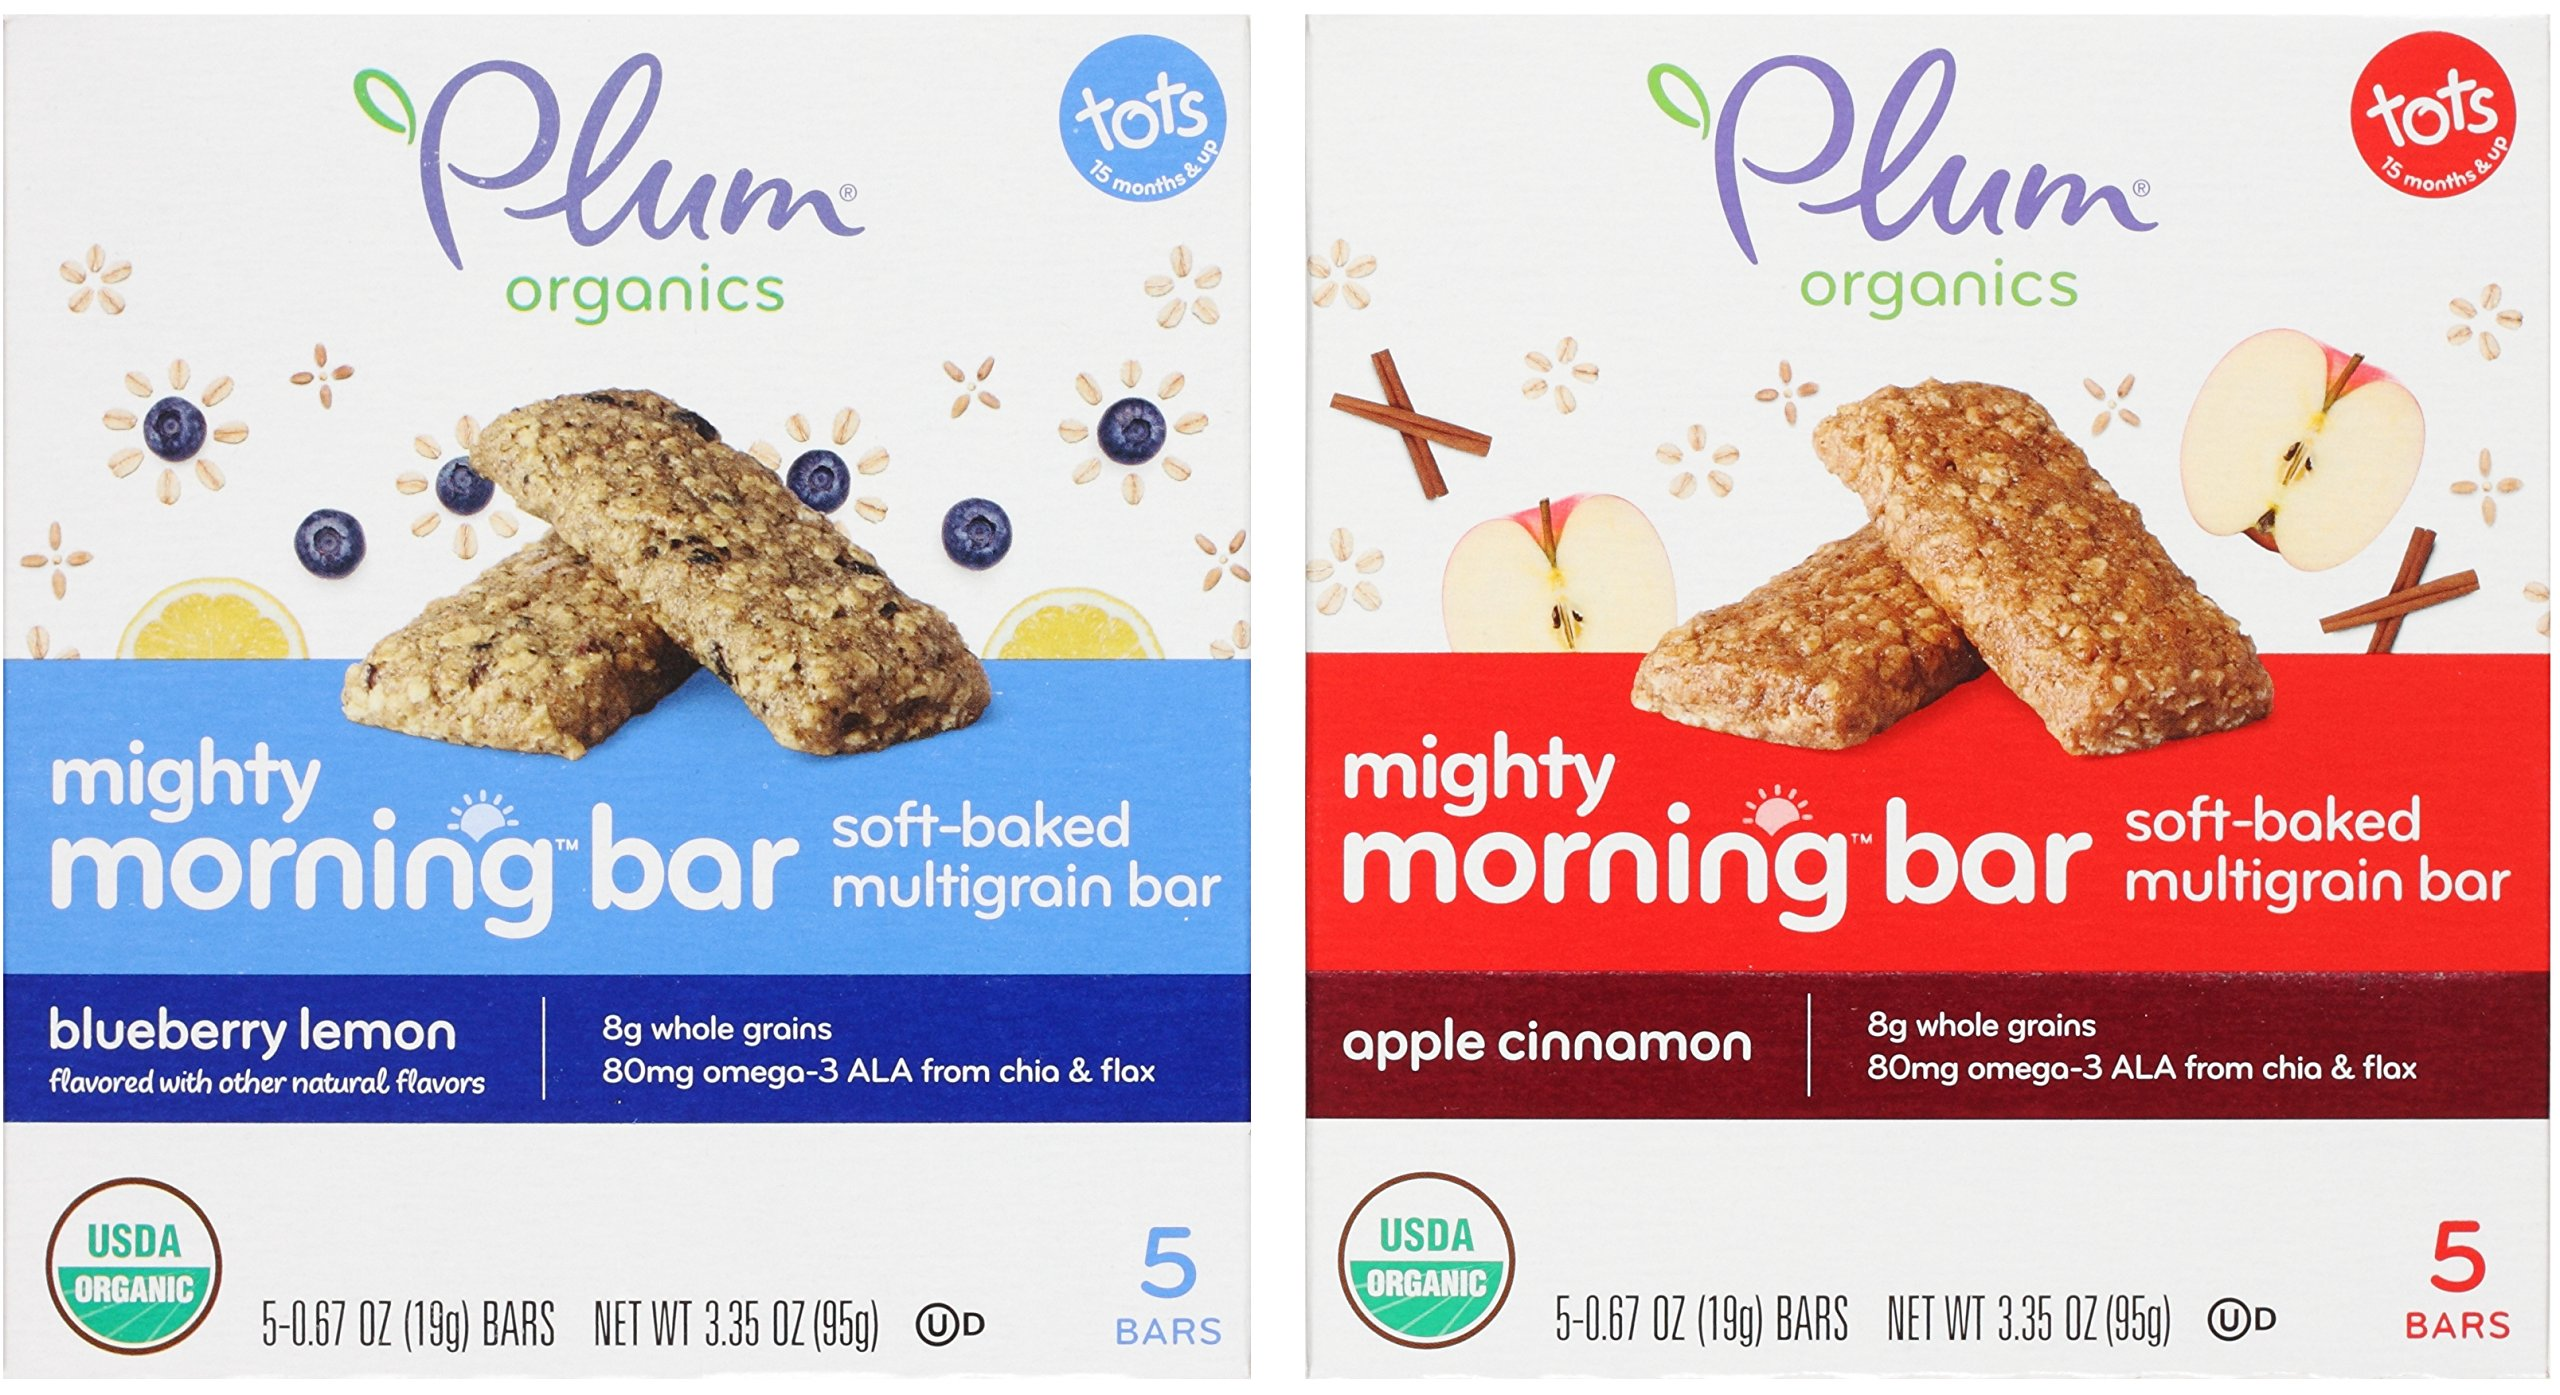 Plum Organics Mighty Morning Bar Variety Bundle: (1) Blueberry Lemon 3.35oz and (1) Apple Cinnamon 3.35oz (2 Pack Total) by Plum Organics